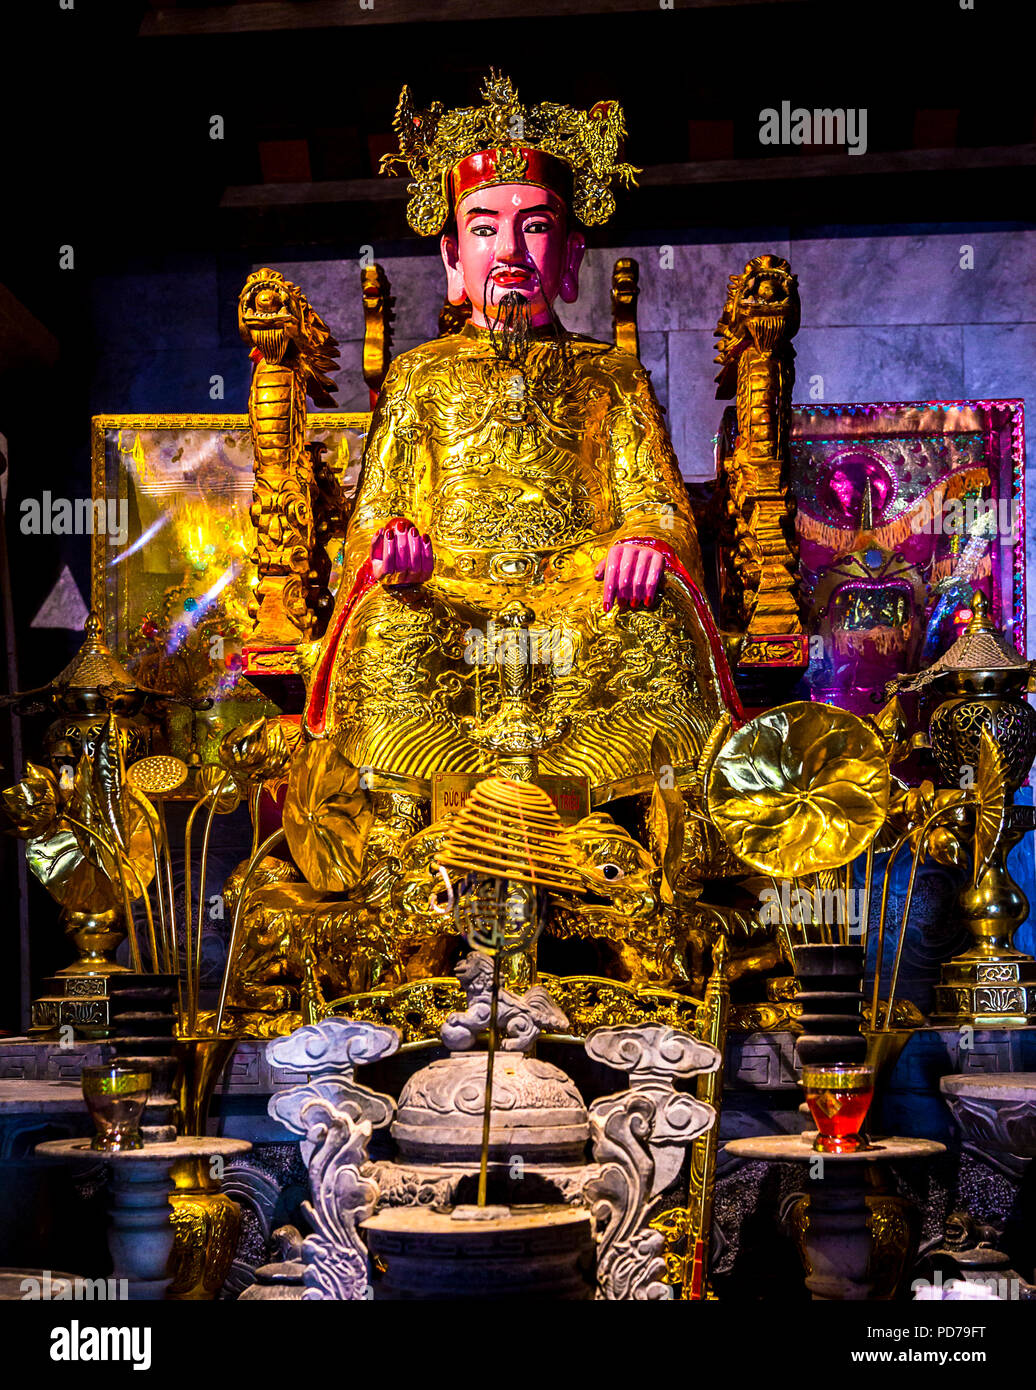 Statue at Buddhist Temple - Stock Image